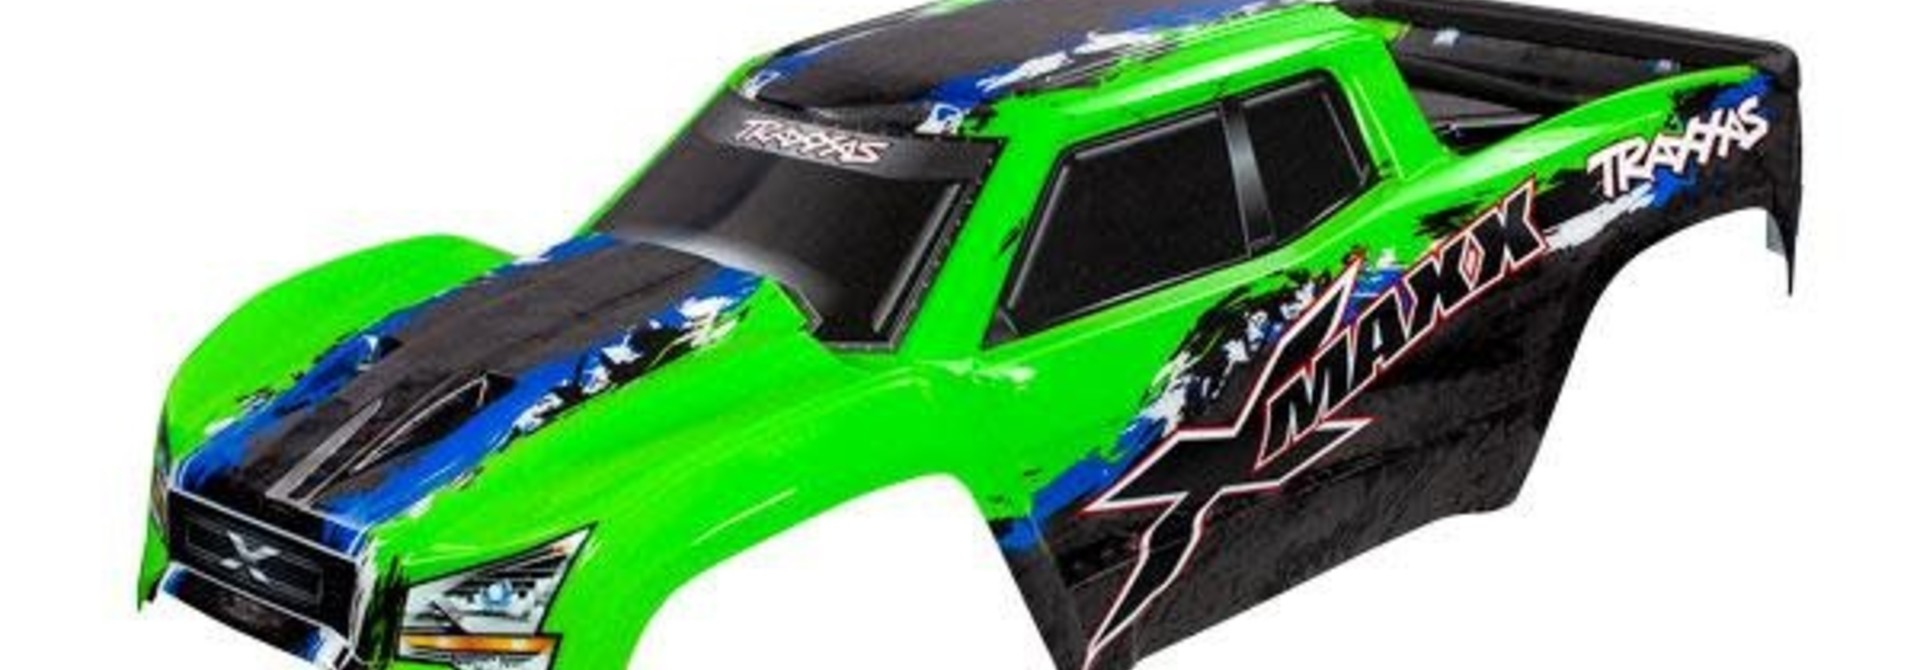 BODY, X-MAXX®, GREEN (PAINTED, DECALS APPLIED) (AS